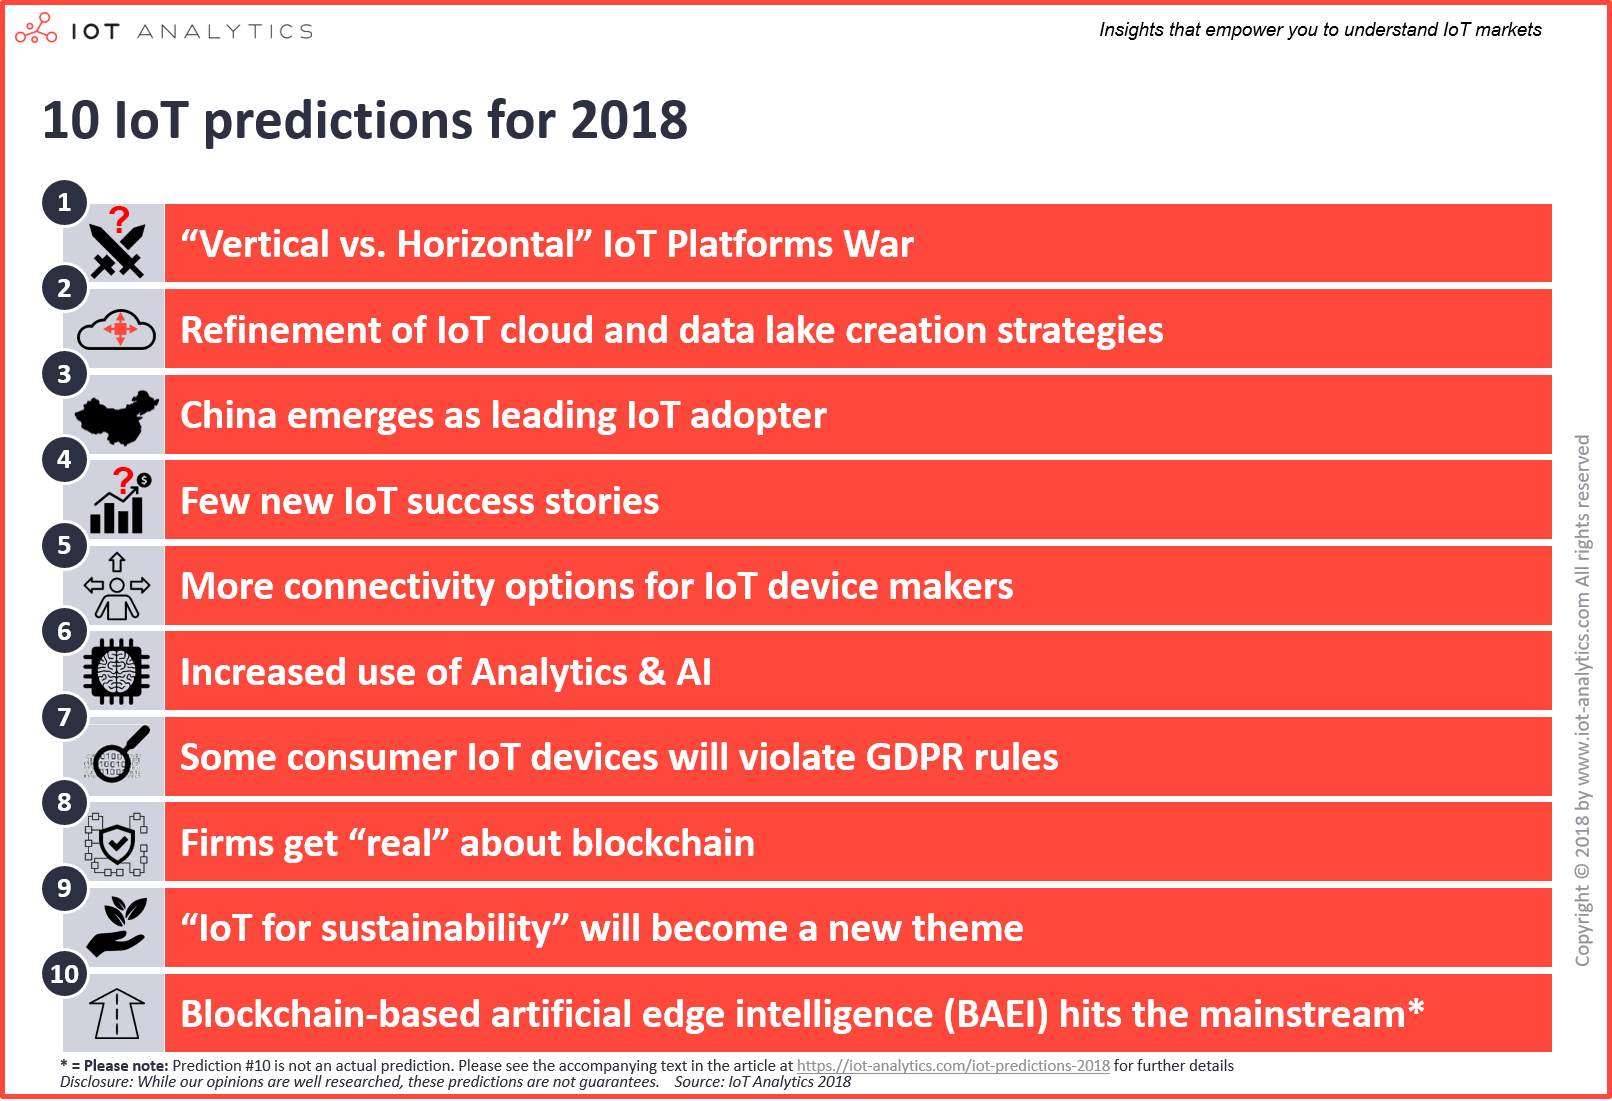 10 IoT Predictions 2018